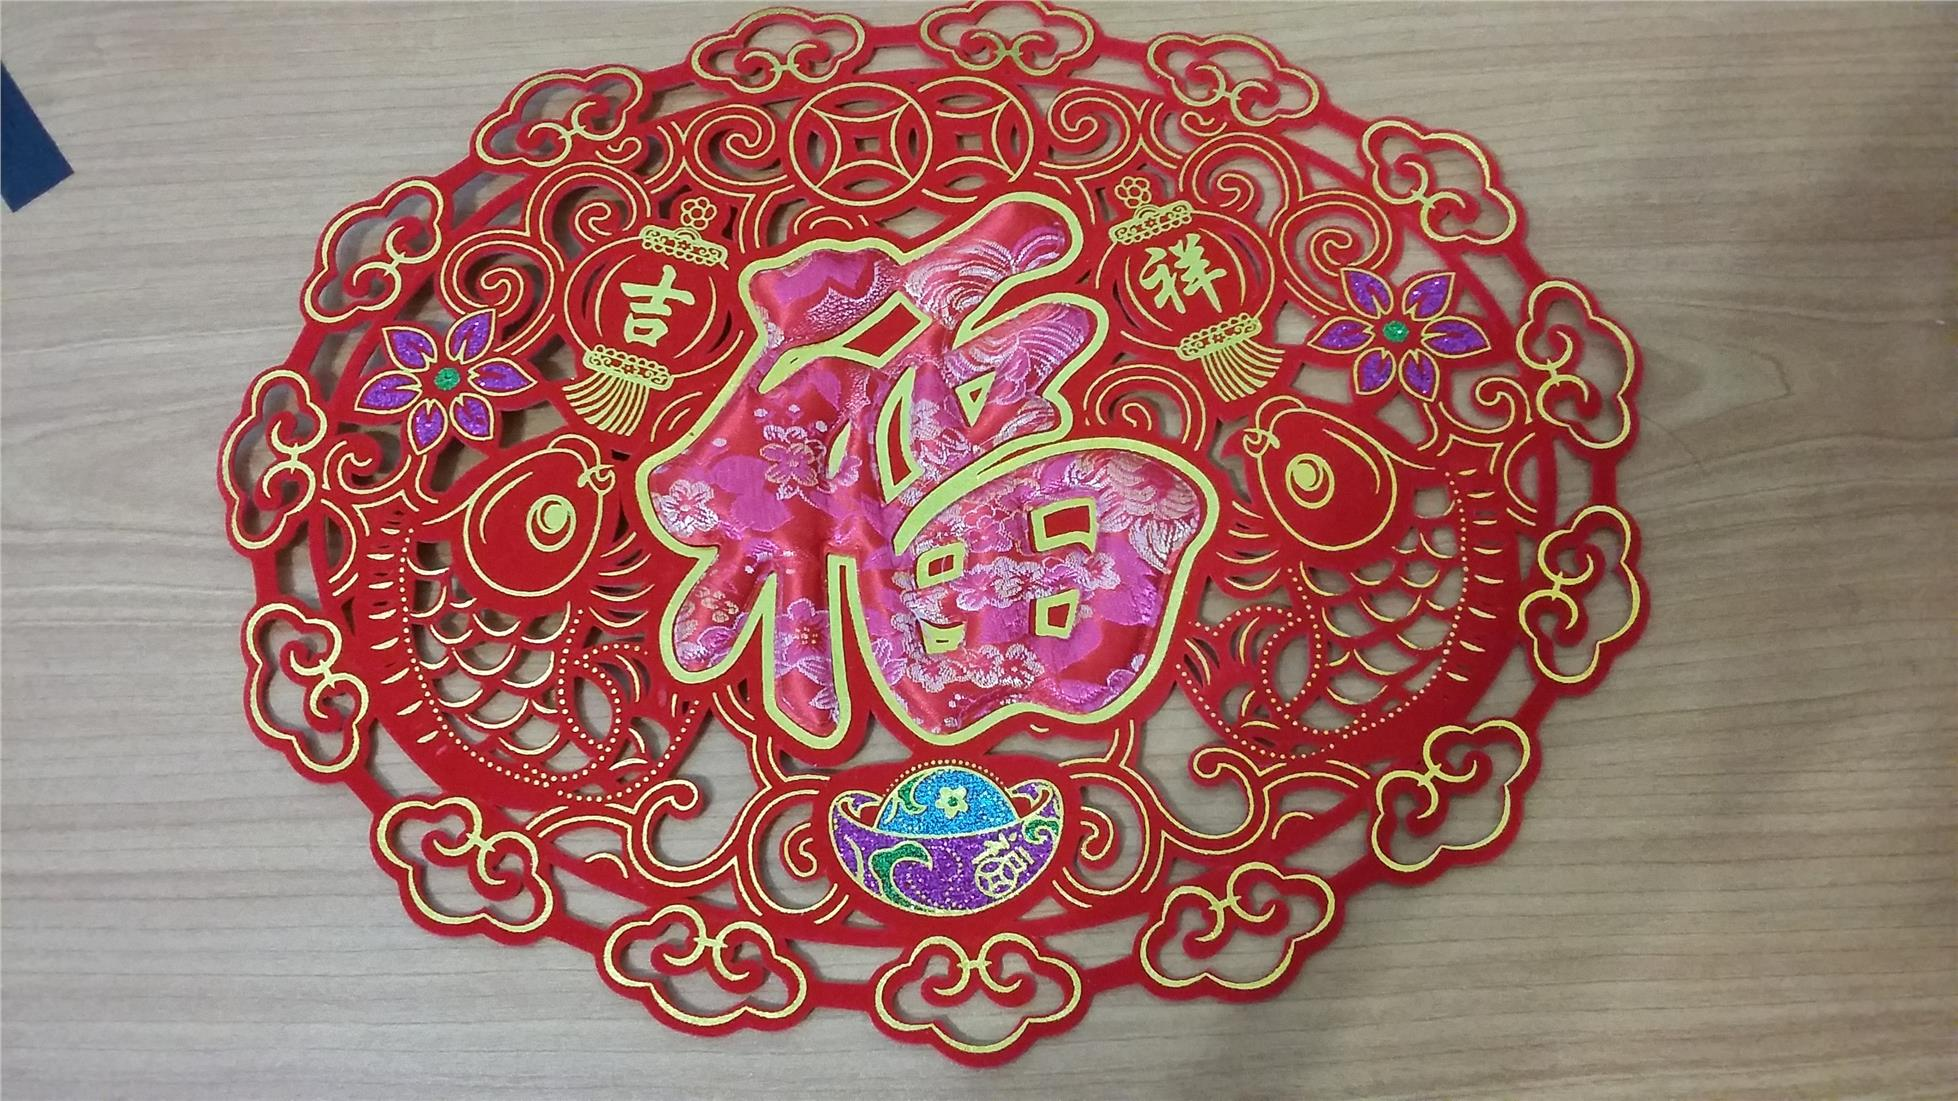 CNY Decoration For Wall - 2 Pieces Set